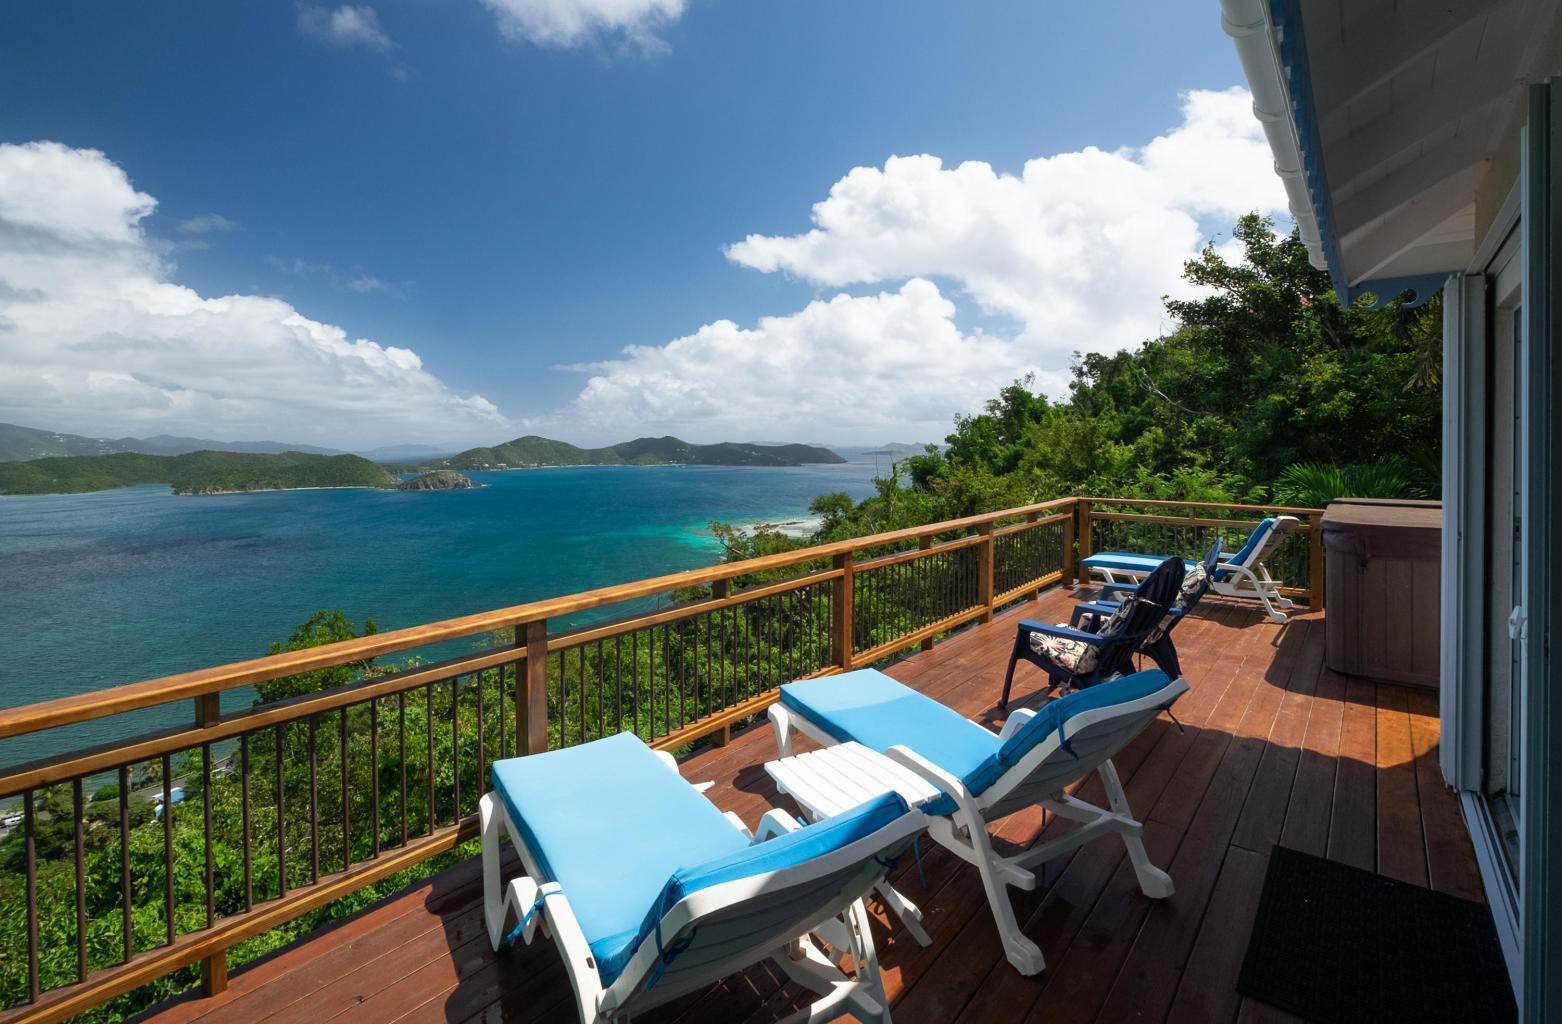 Single Family Homes for Sale at Calabash Boom St John, Virgin Islands 00830 United States Virgin Islands